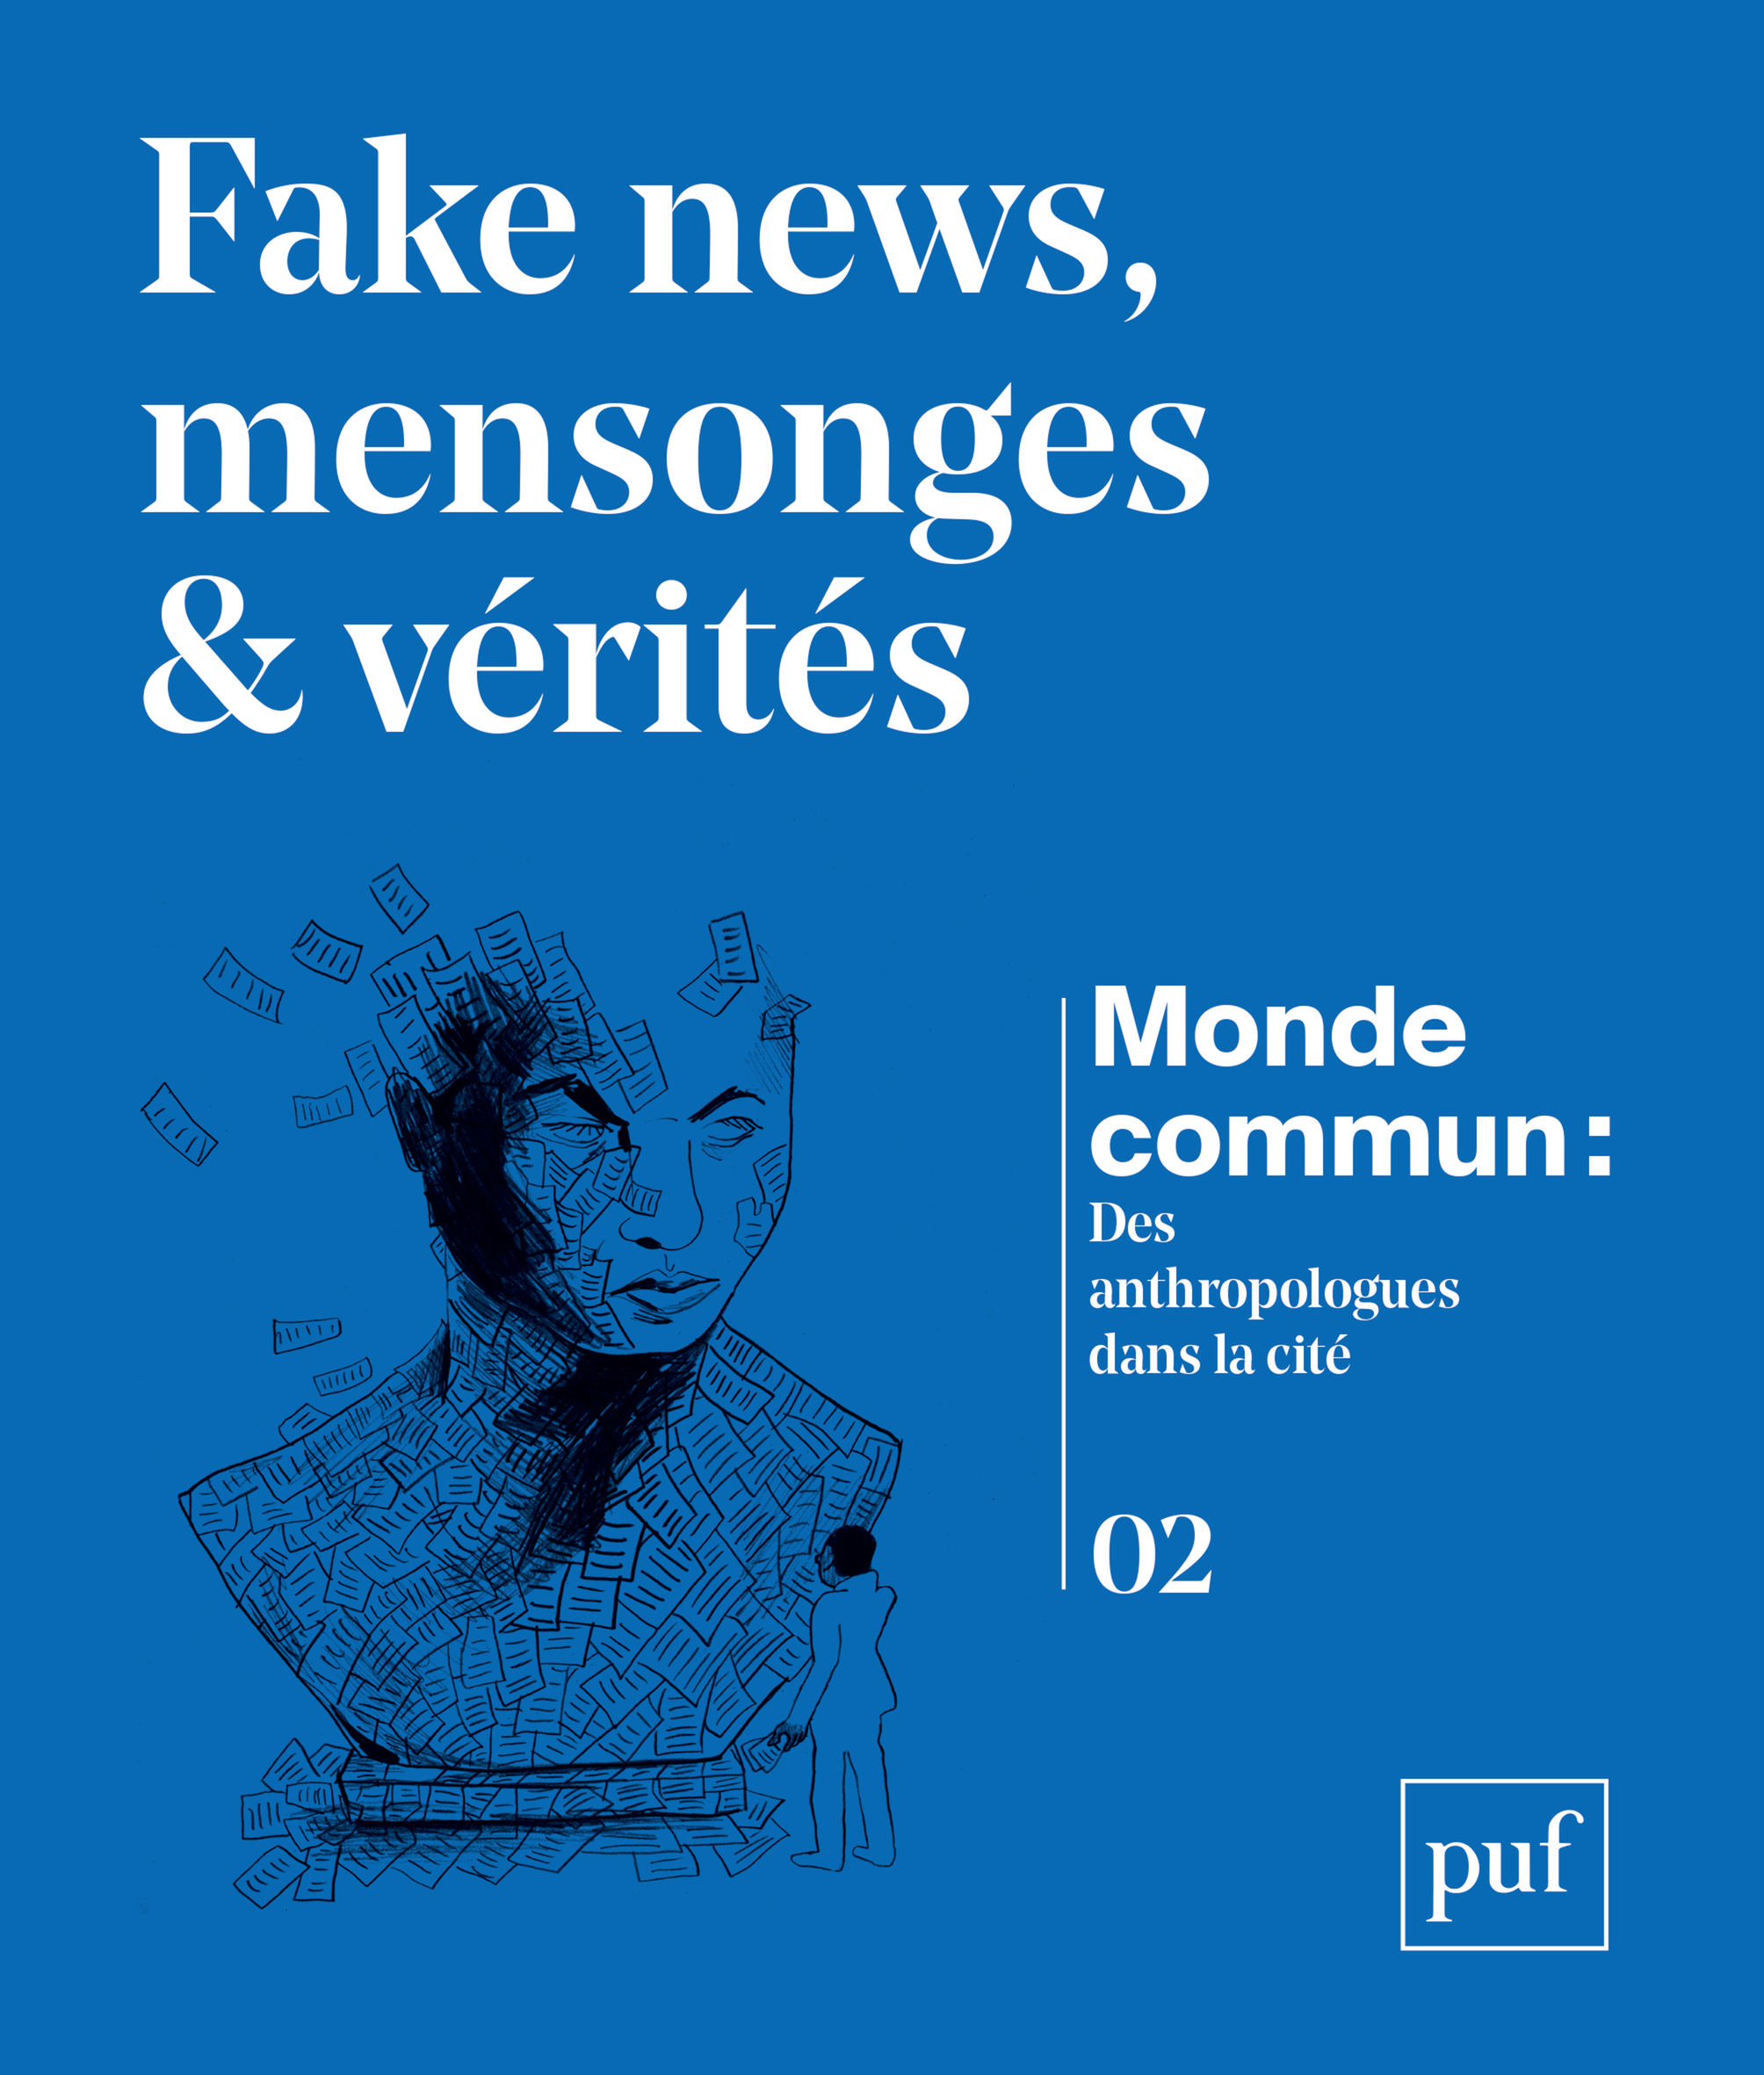 FAKE NEWS, MENSONGES ET VERITES